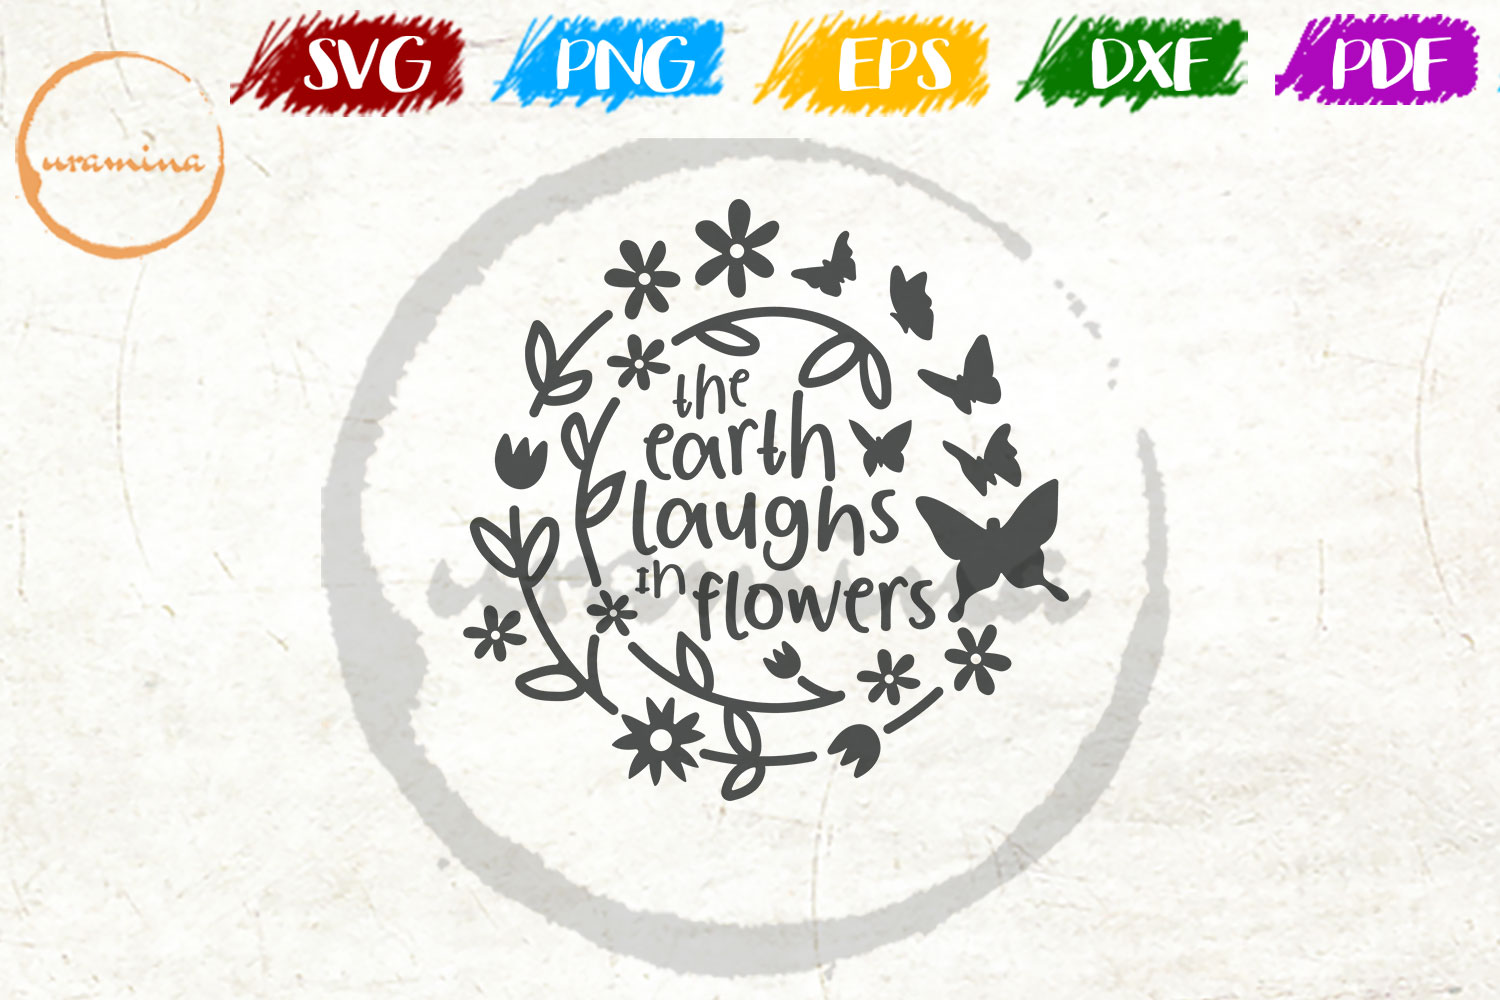 Download Free The Earth Laughs In Flowers Graphic By Uramina Creative Fabrica for Cricut Explore, Silhouette and other cutting machines.